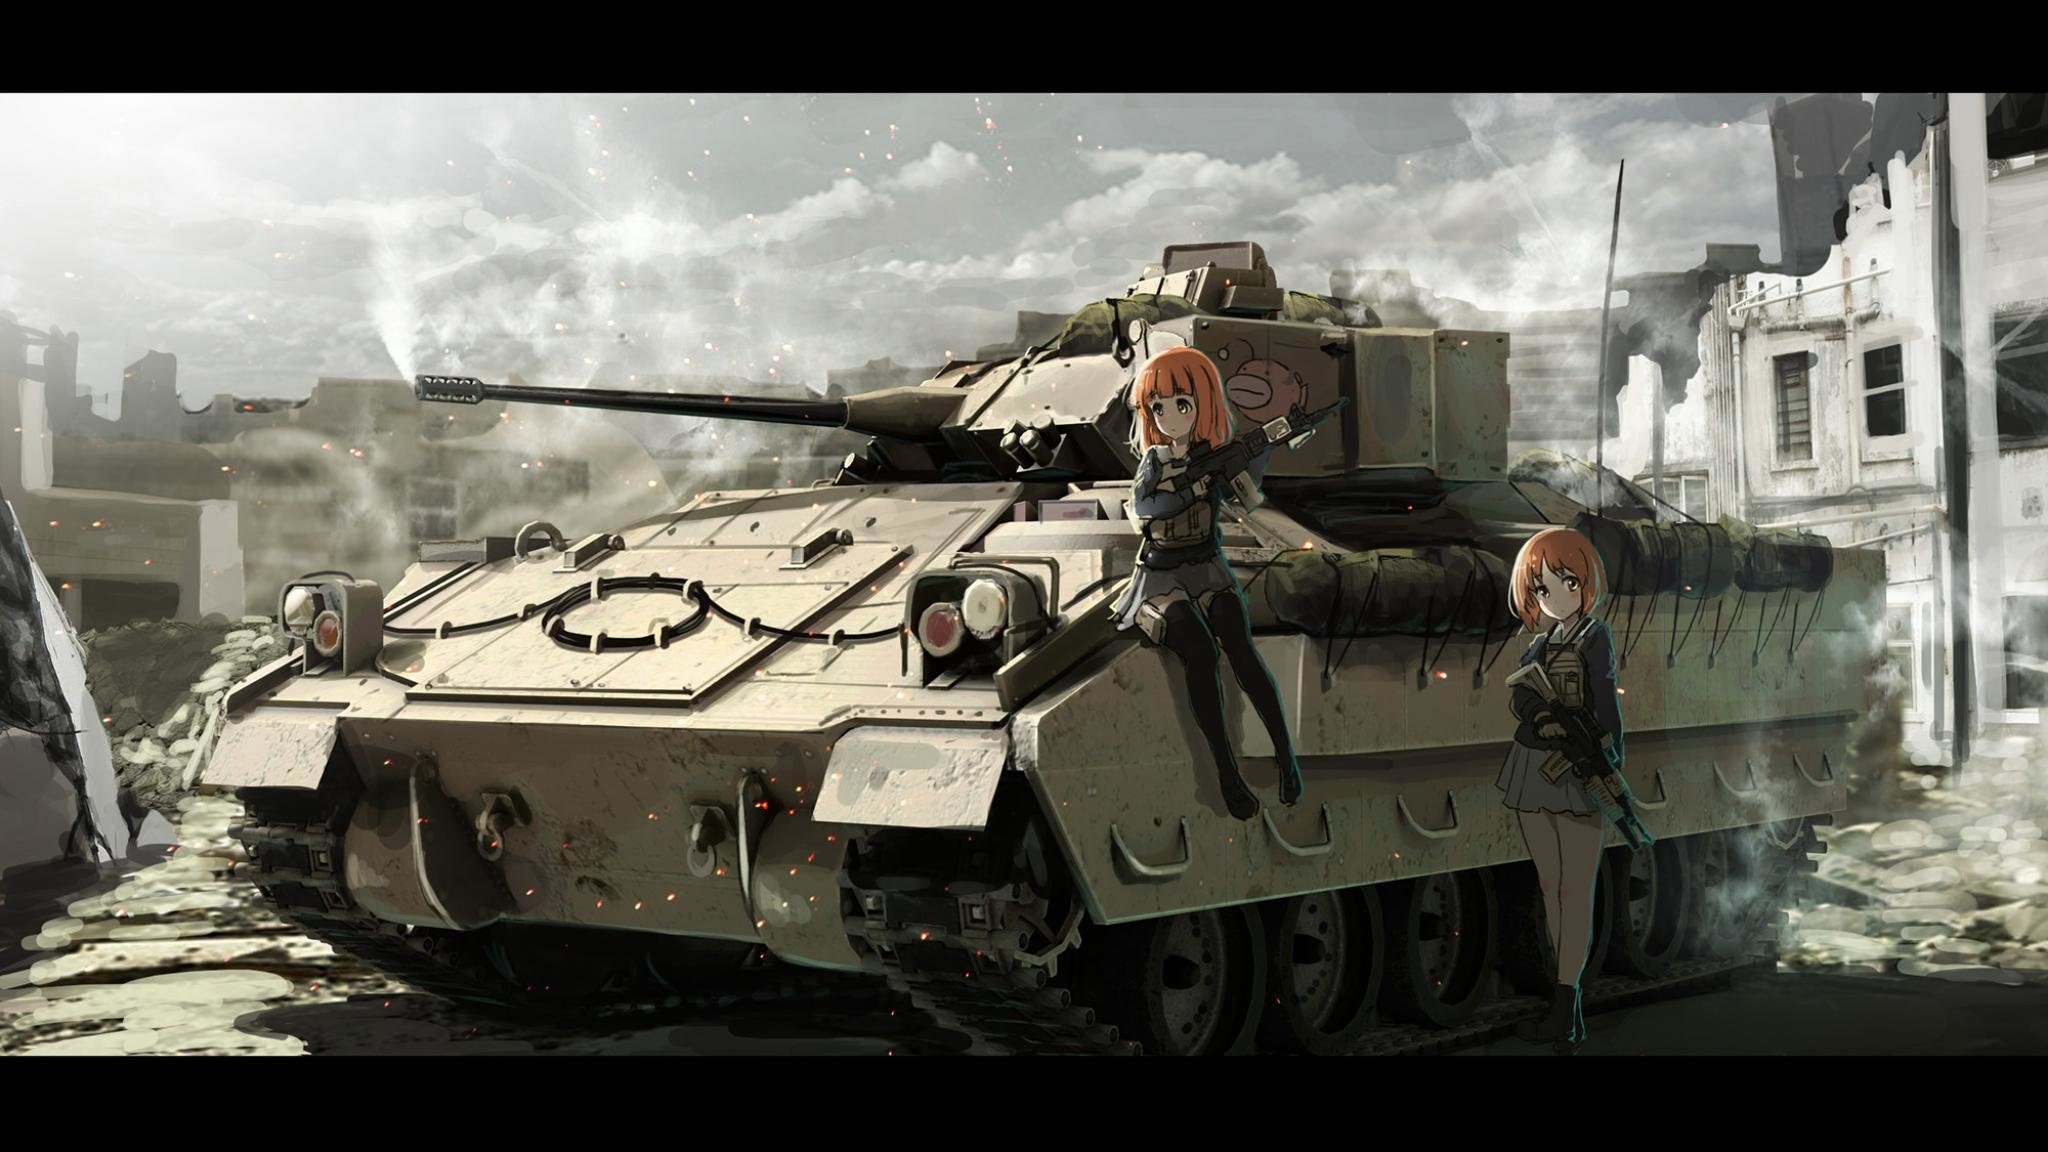 High resolution Girls Und Panzer hd 2048x1152 background ID:208230 for desktop